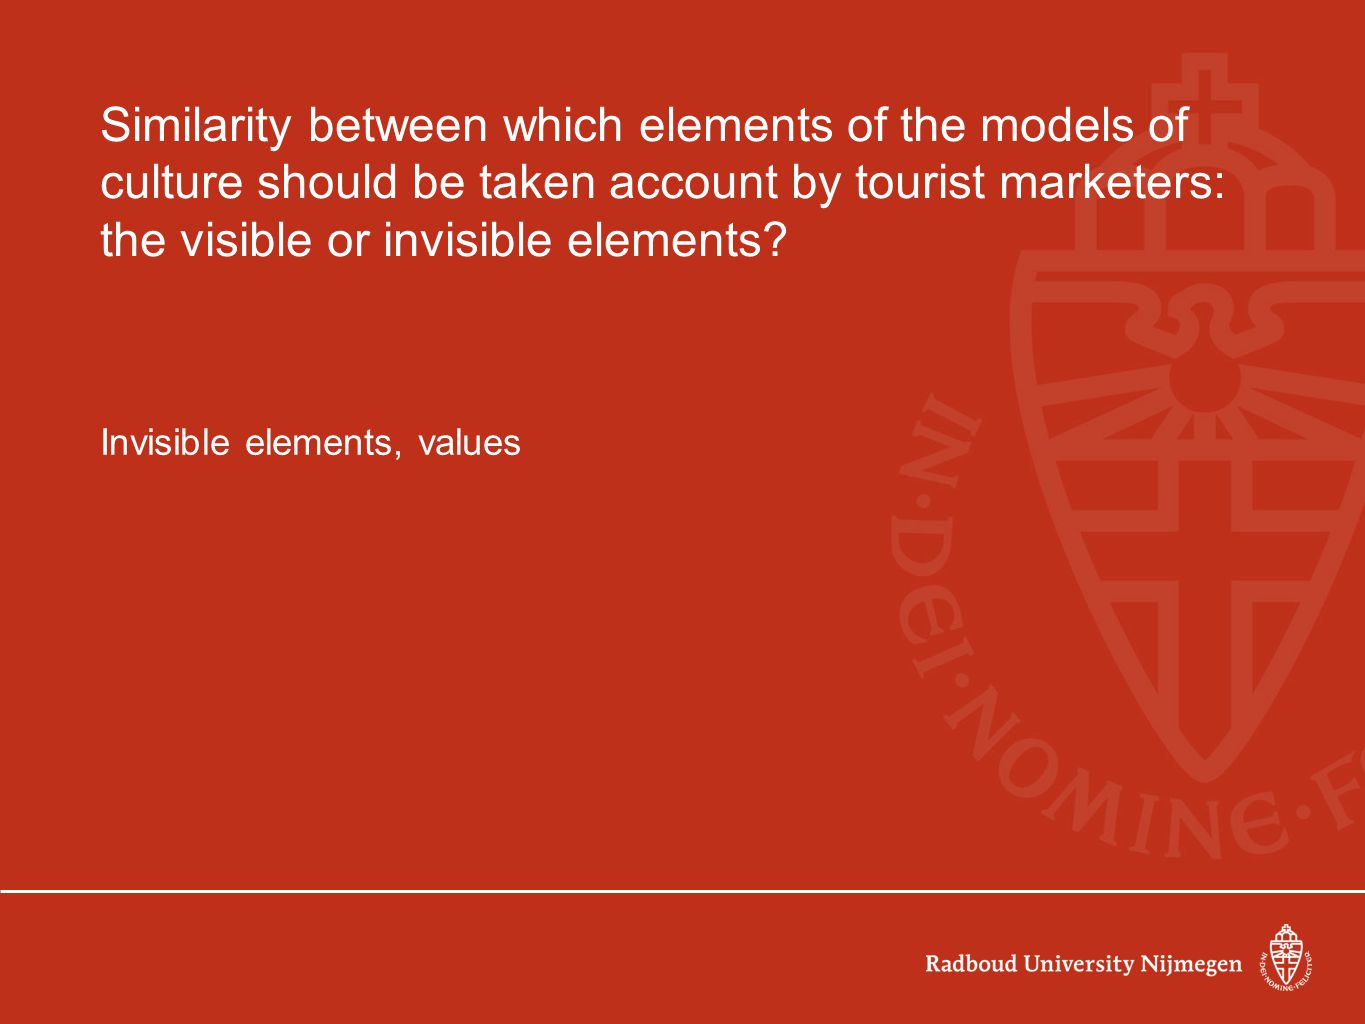 Similarity between which elements of the models of culture should be taken account by tourist marketers: the visible or invisible elements